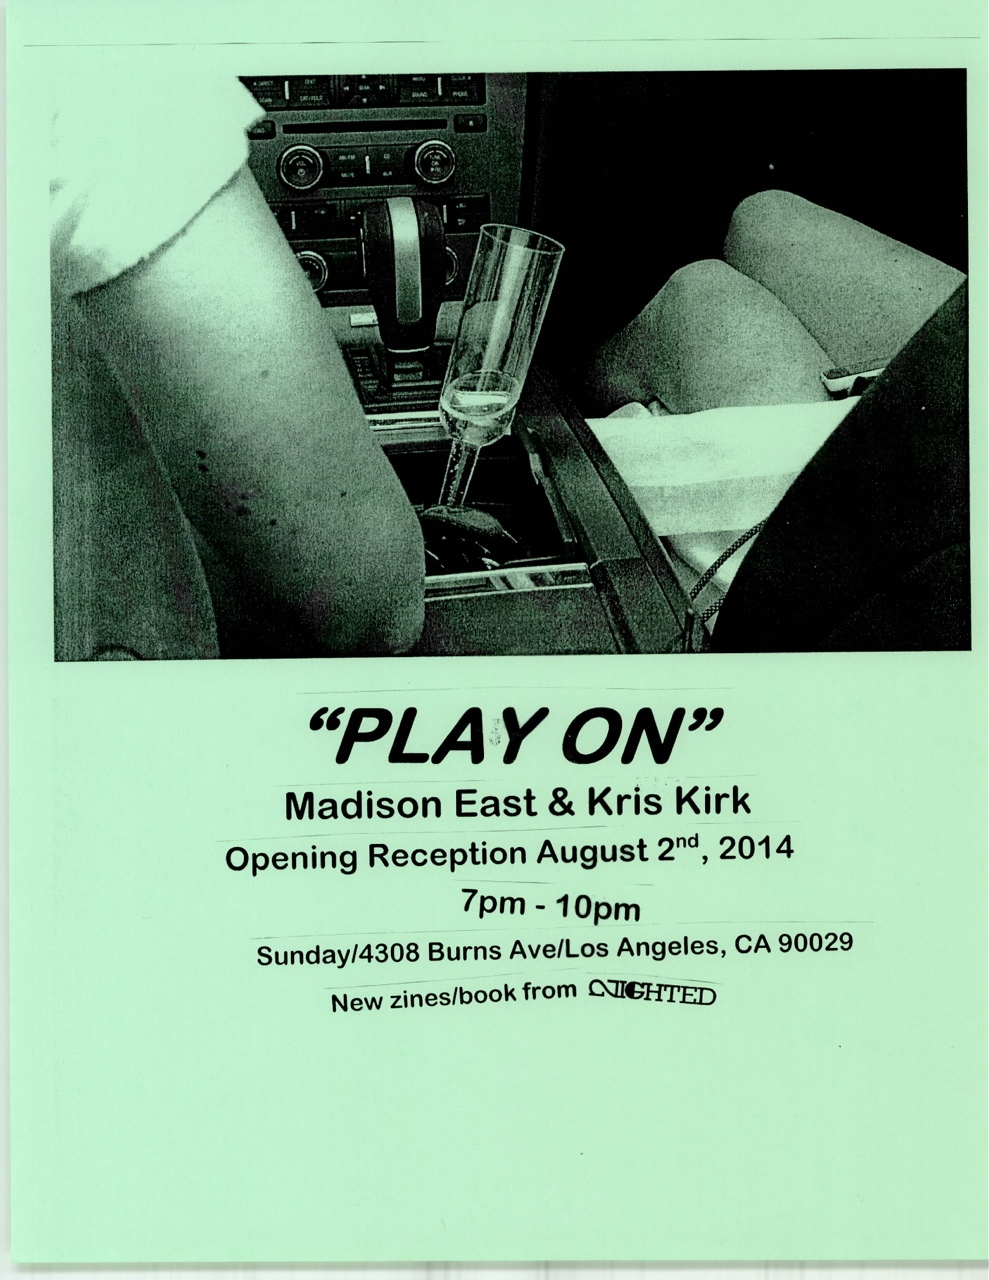 """Play On""       Madison East & Kris Kirk   Opening reception: August 2nd, 2014   7pm-10pm at Sunday Los Angeles/4308 Burns ave/   We're releasing two new zines and a book for the show!"